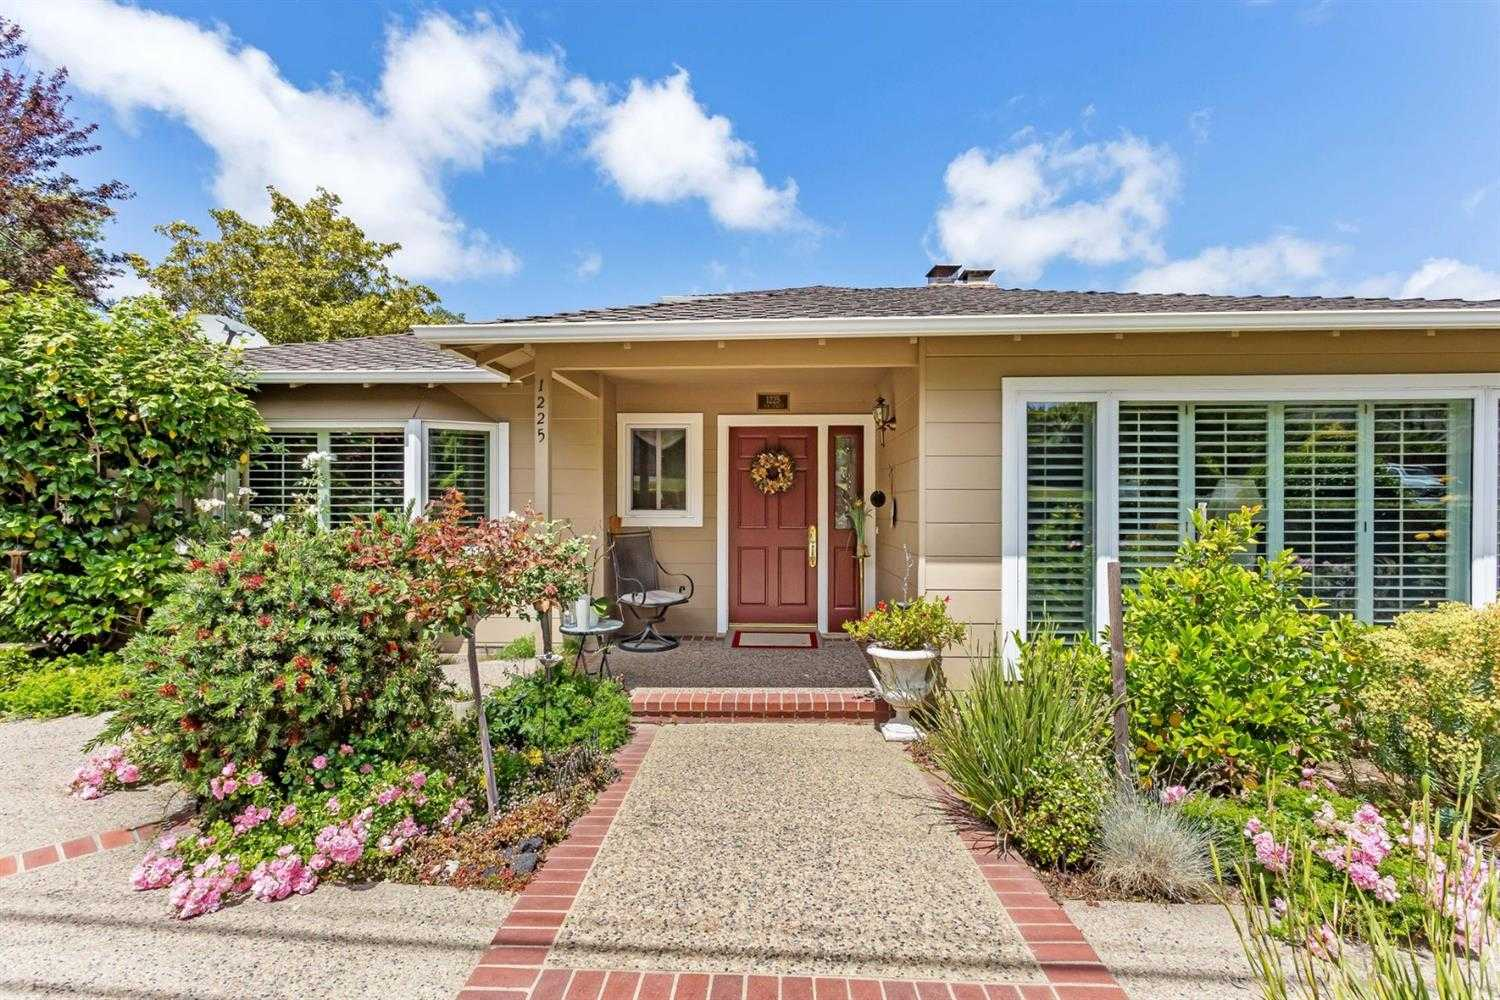 $2,550,000 - 4Br/4Ba -  for Sale in Vernon Terrace, San Mateo